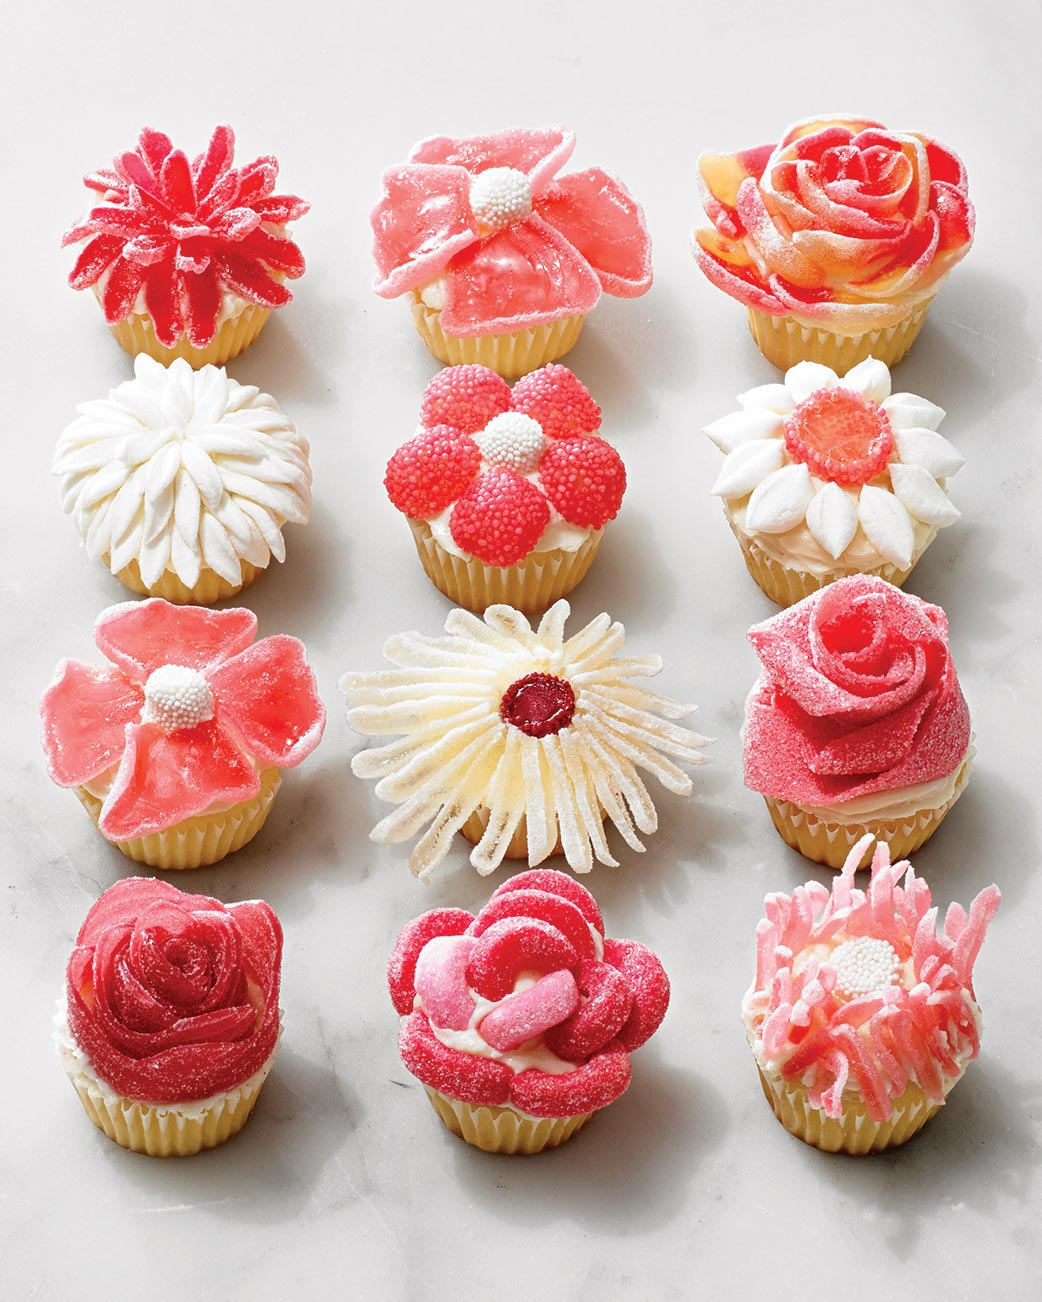 cupcakes decorated with flowers made from candy